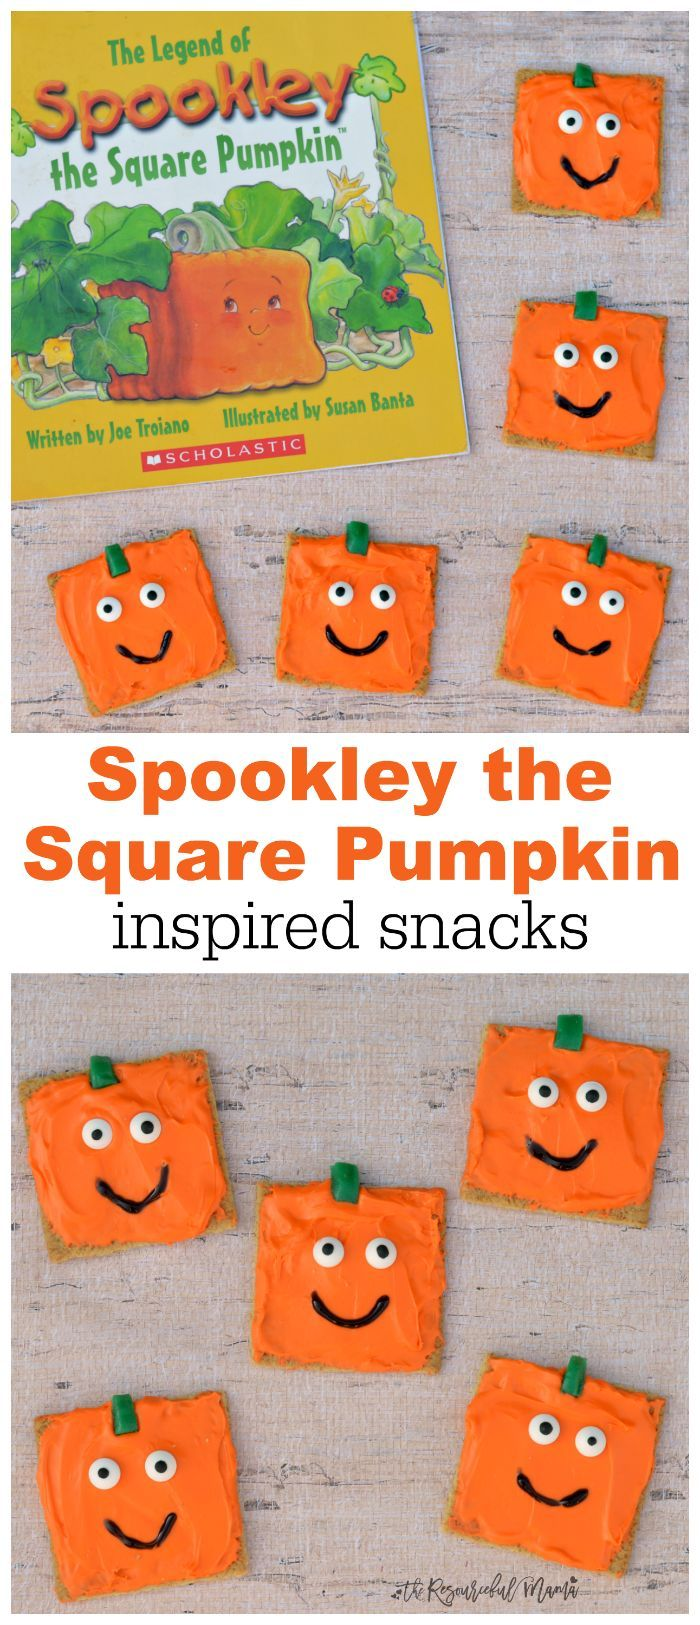 These super simple and yummy pumpkin snacks are inspired by The Legend of Spookley the Square Pumpkin. They make a great Halloween and fall themed snack.